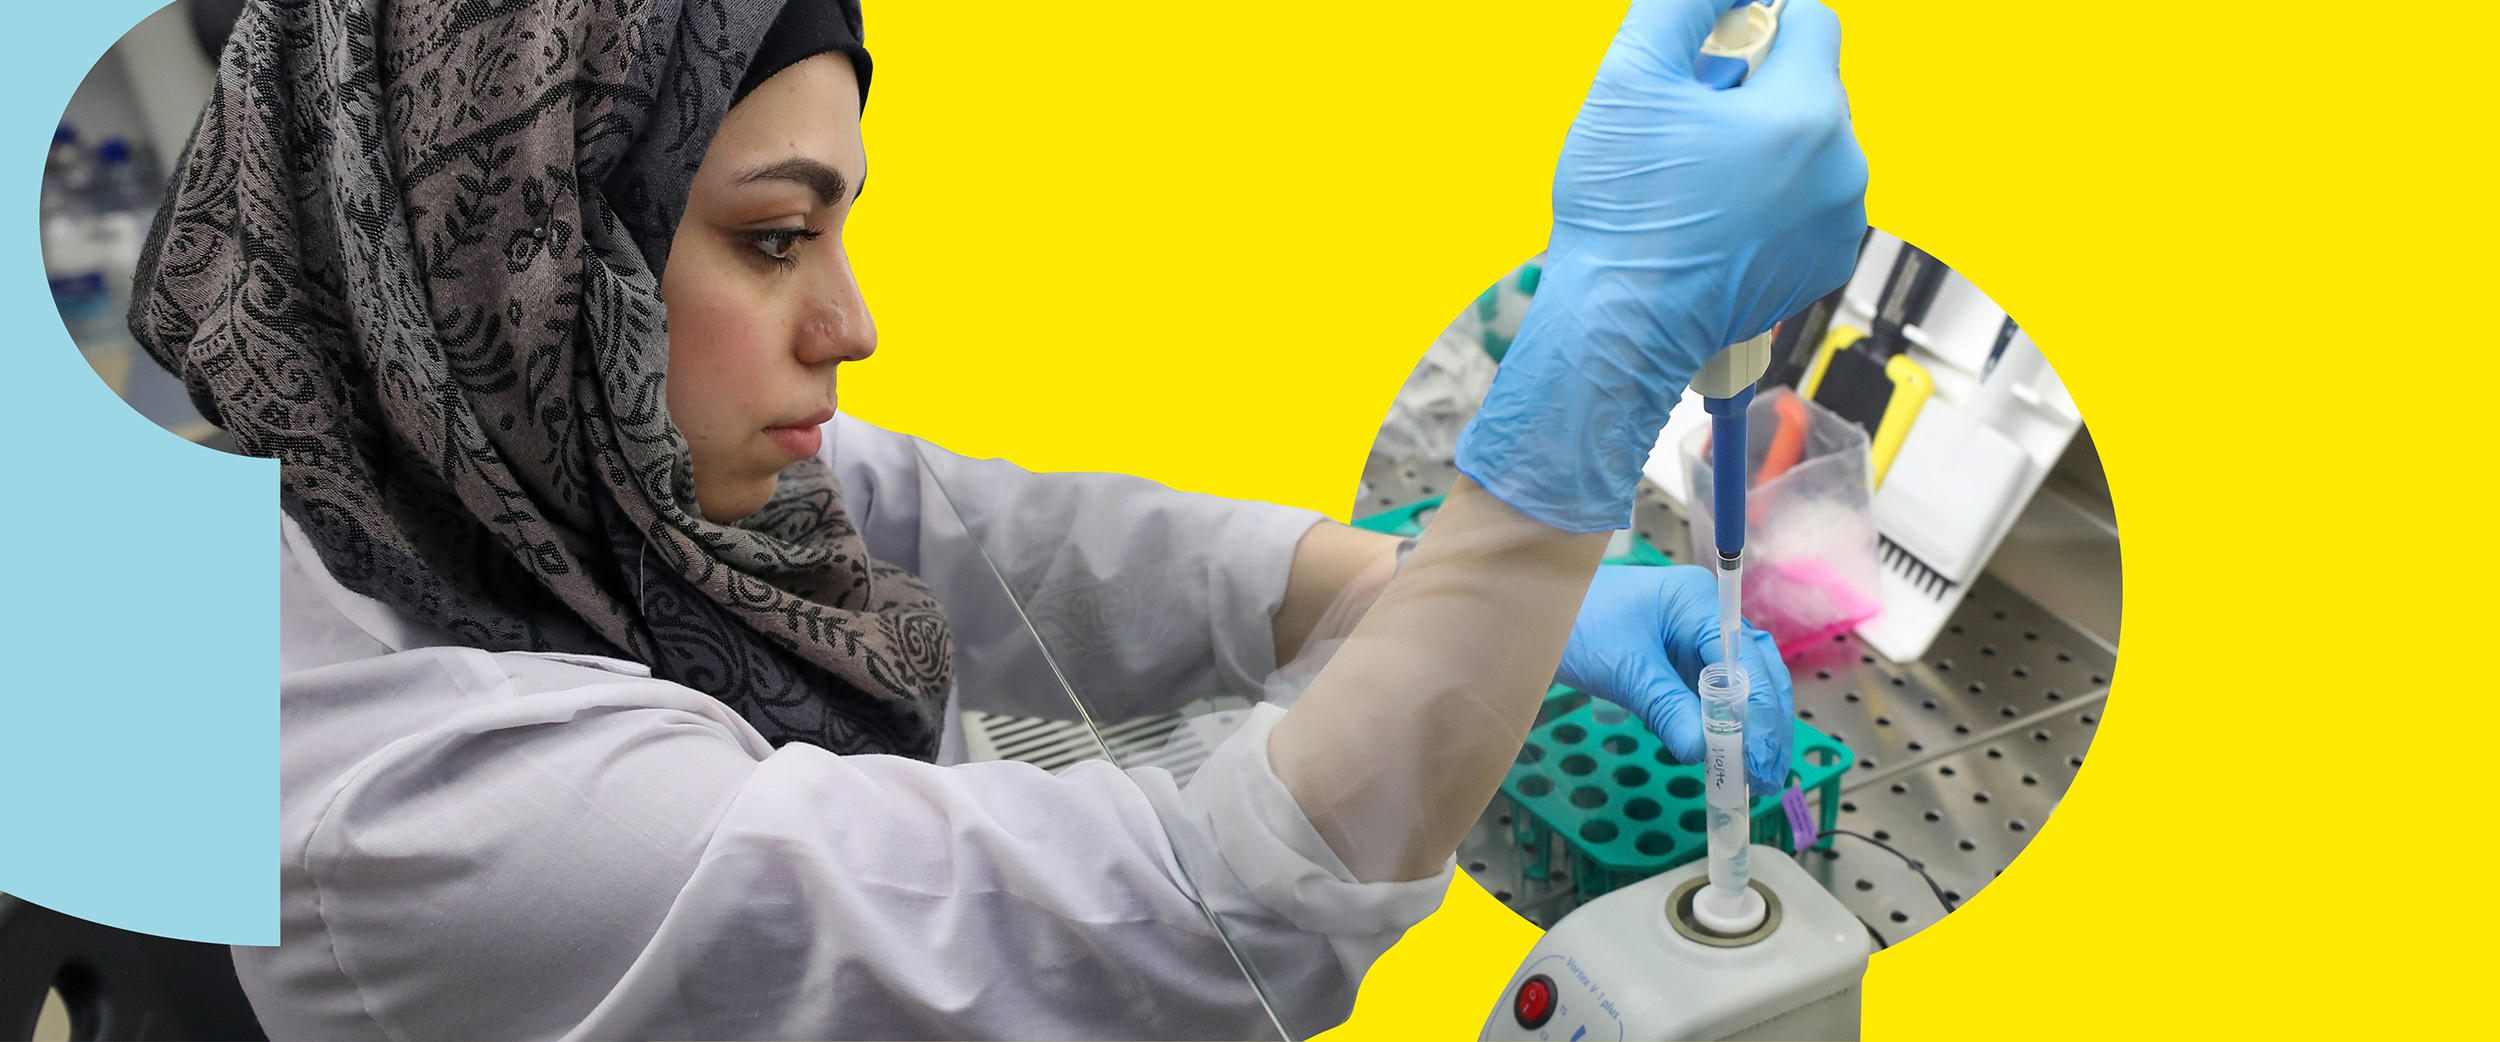 A researcher working with biomaterial in a lab. Composite image.